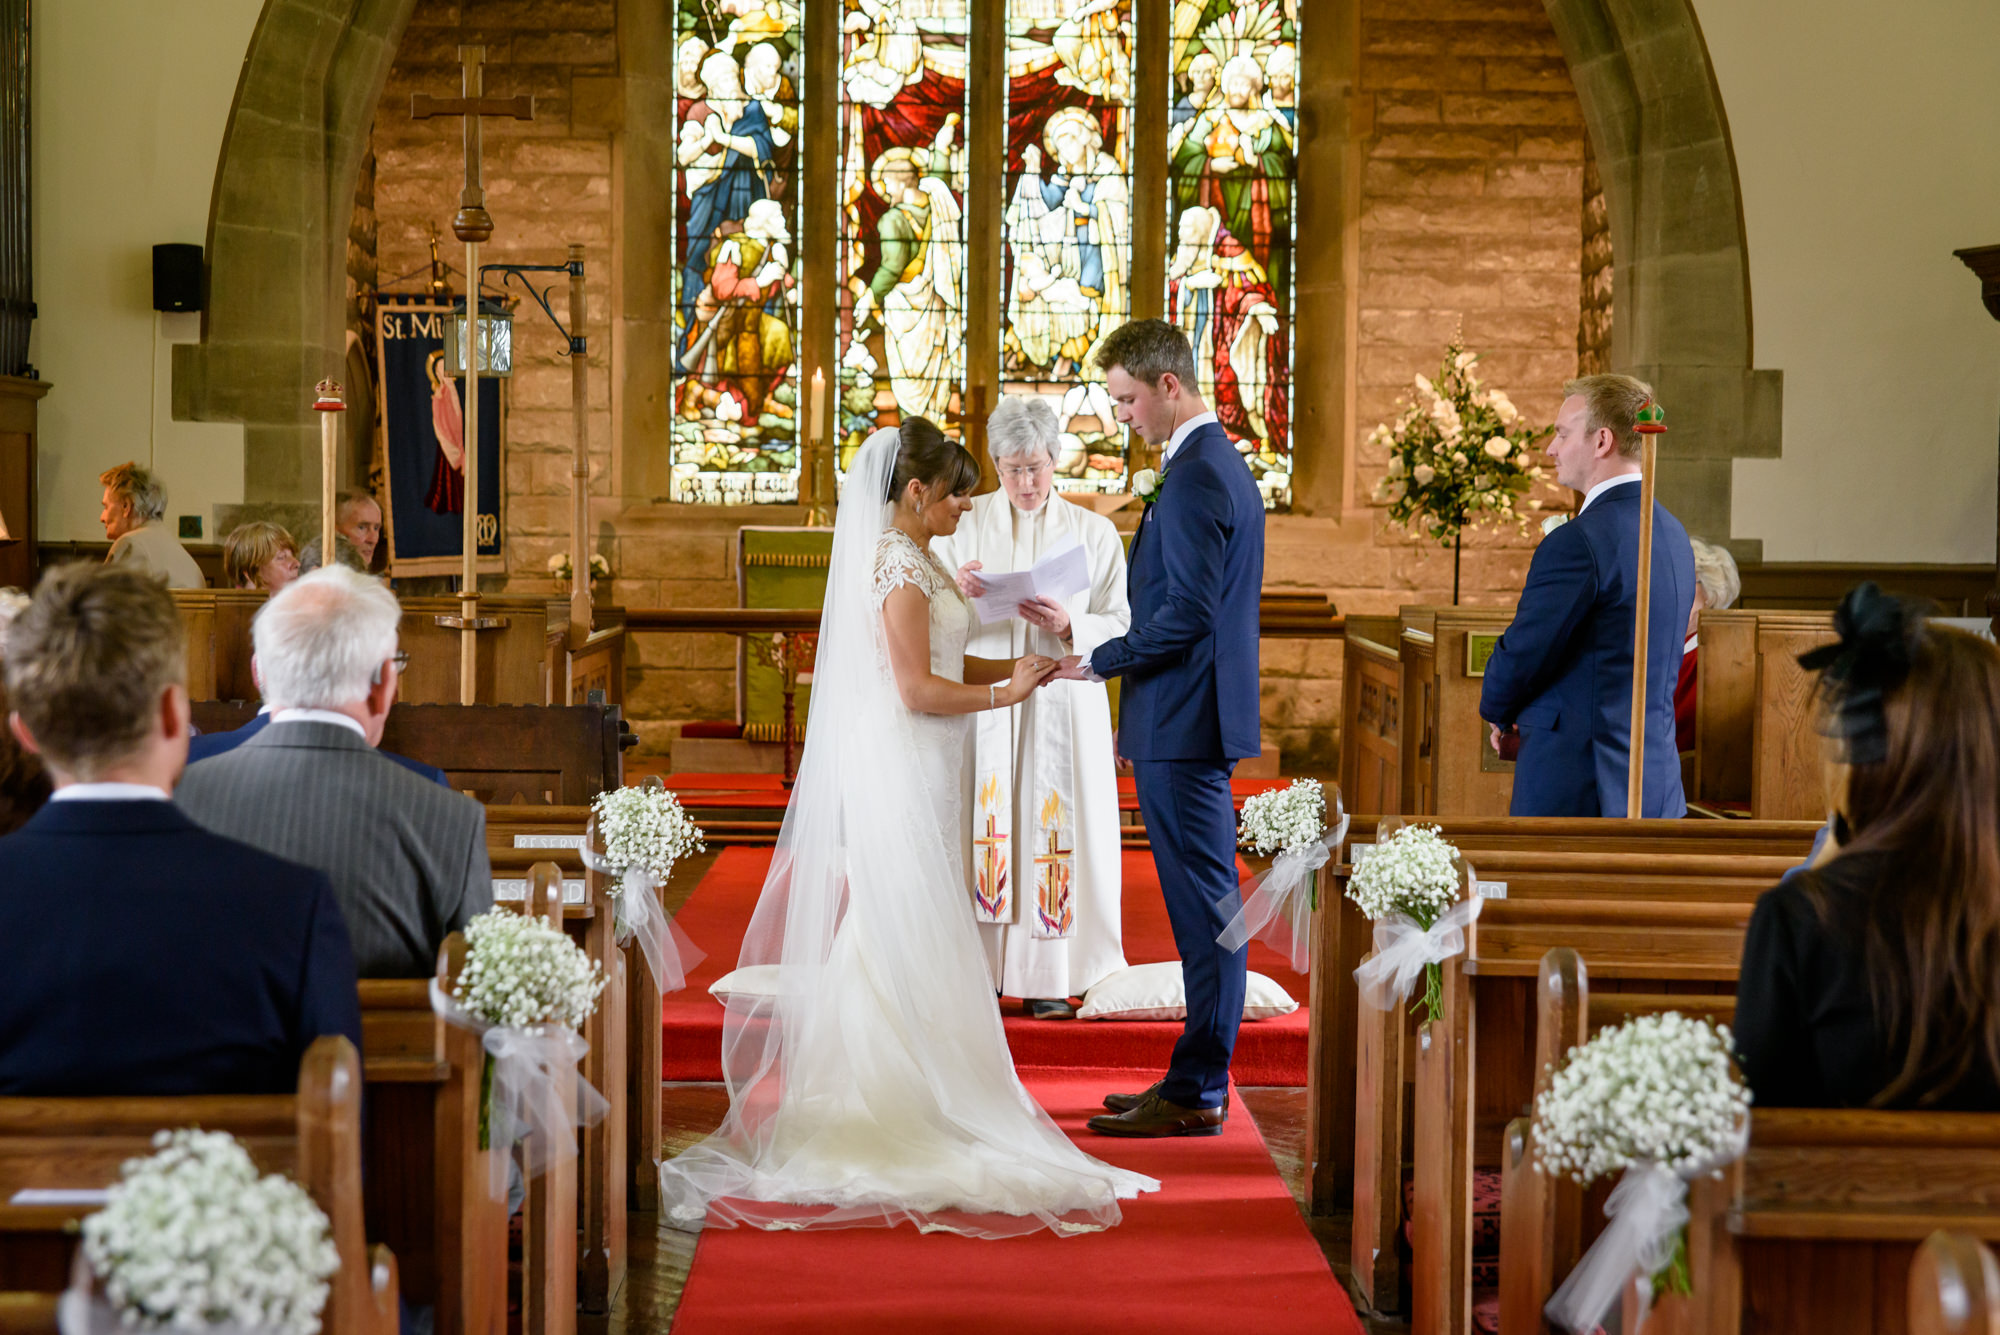 Bride and groom exchanging the rings at the Parish Church of Saint Michael Whitewell